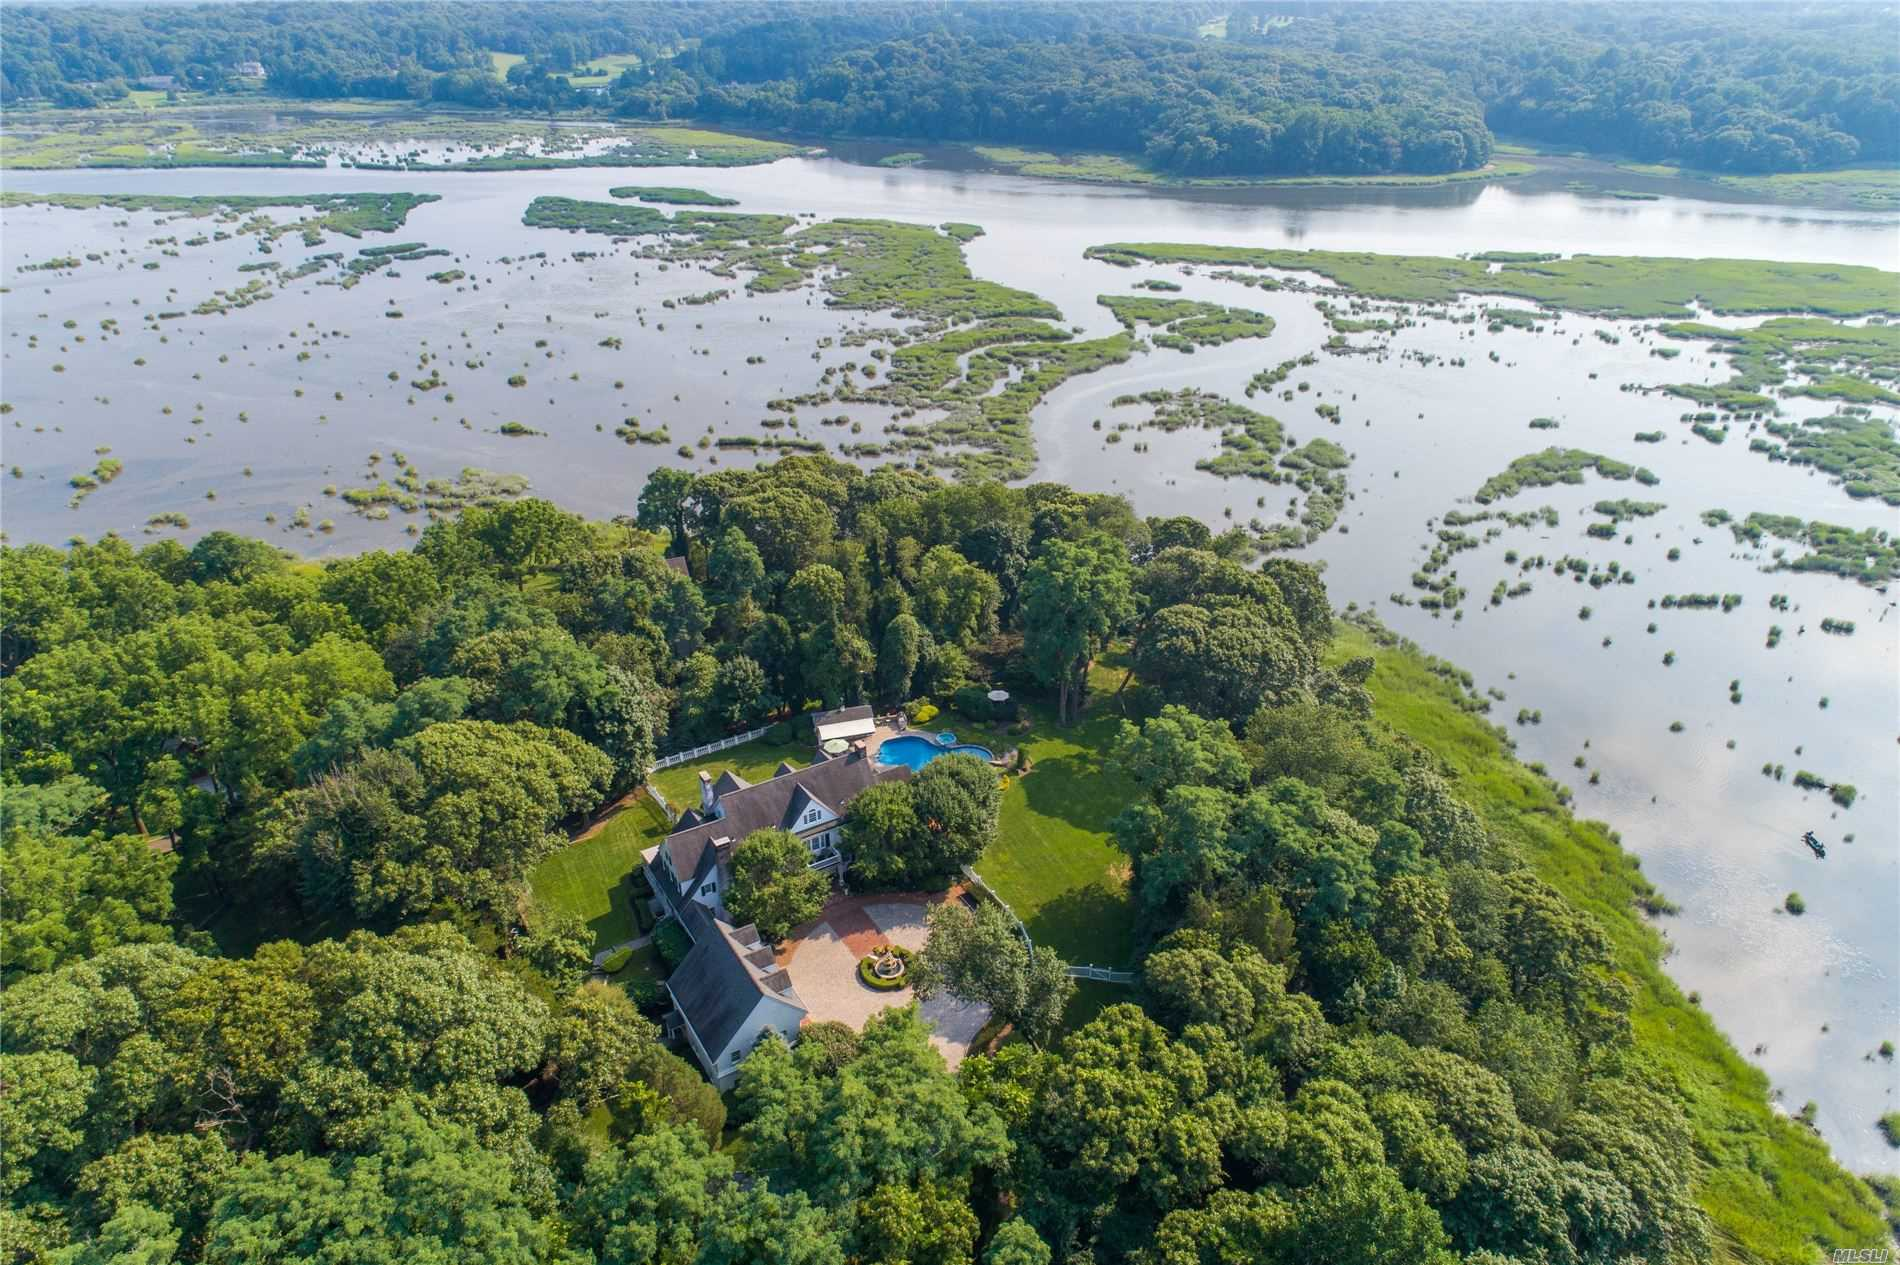 Architecturally and historically significant estate on 5 waterfront acres along the Nissequogue River. The home boasts 4 bedrooms, 4.5 bathrooms, 5 fireplaces, IGP with pool house, separate guest apartment, and painstakingly restored original details lending abundant charm to this idyllic setting.